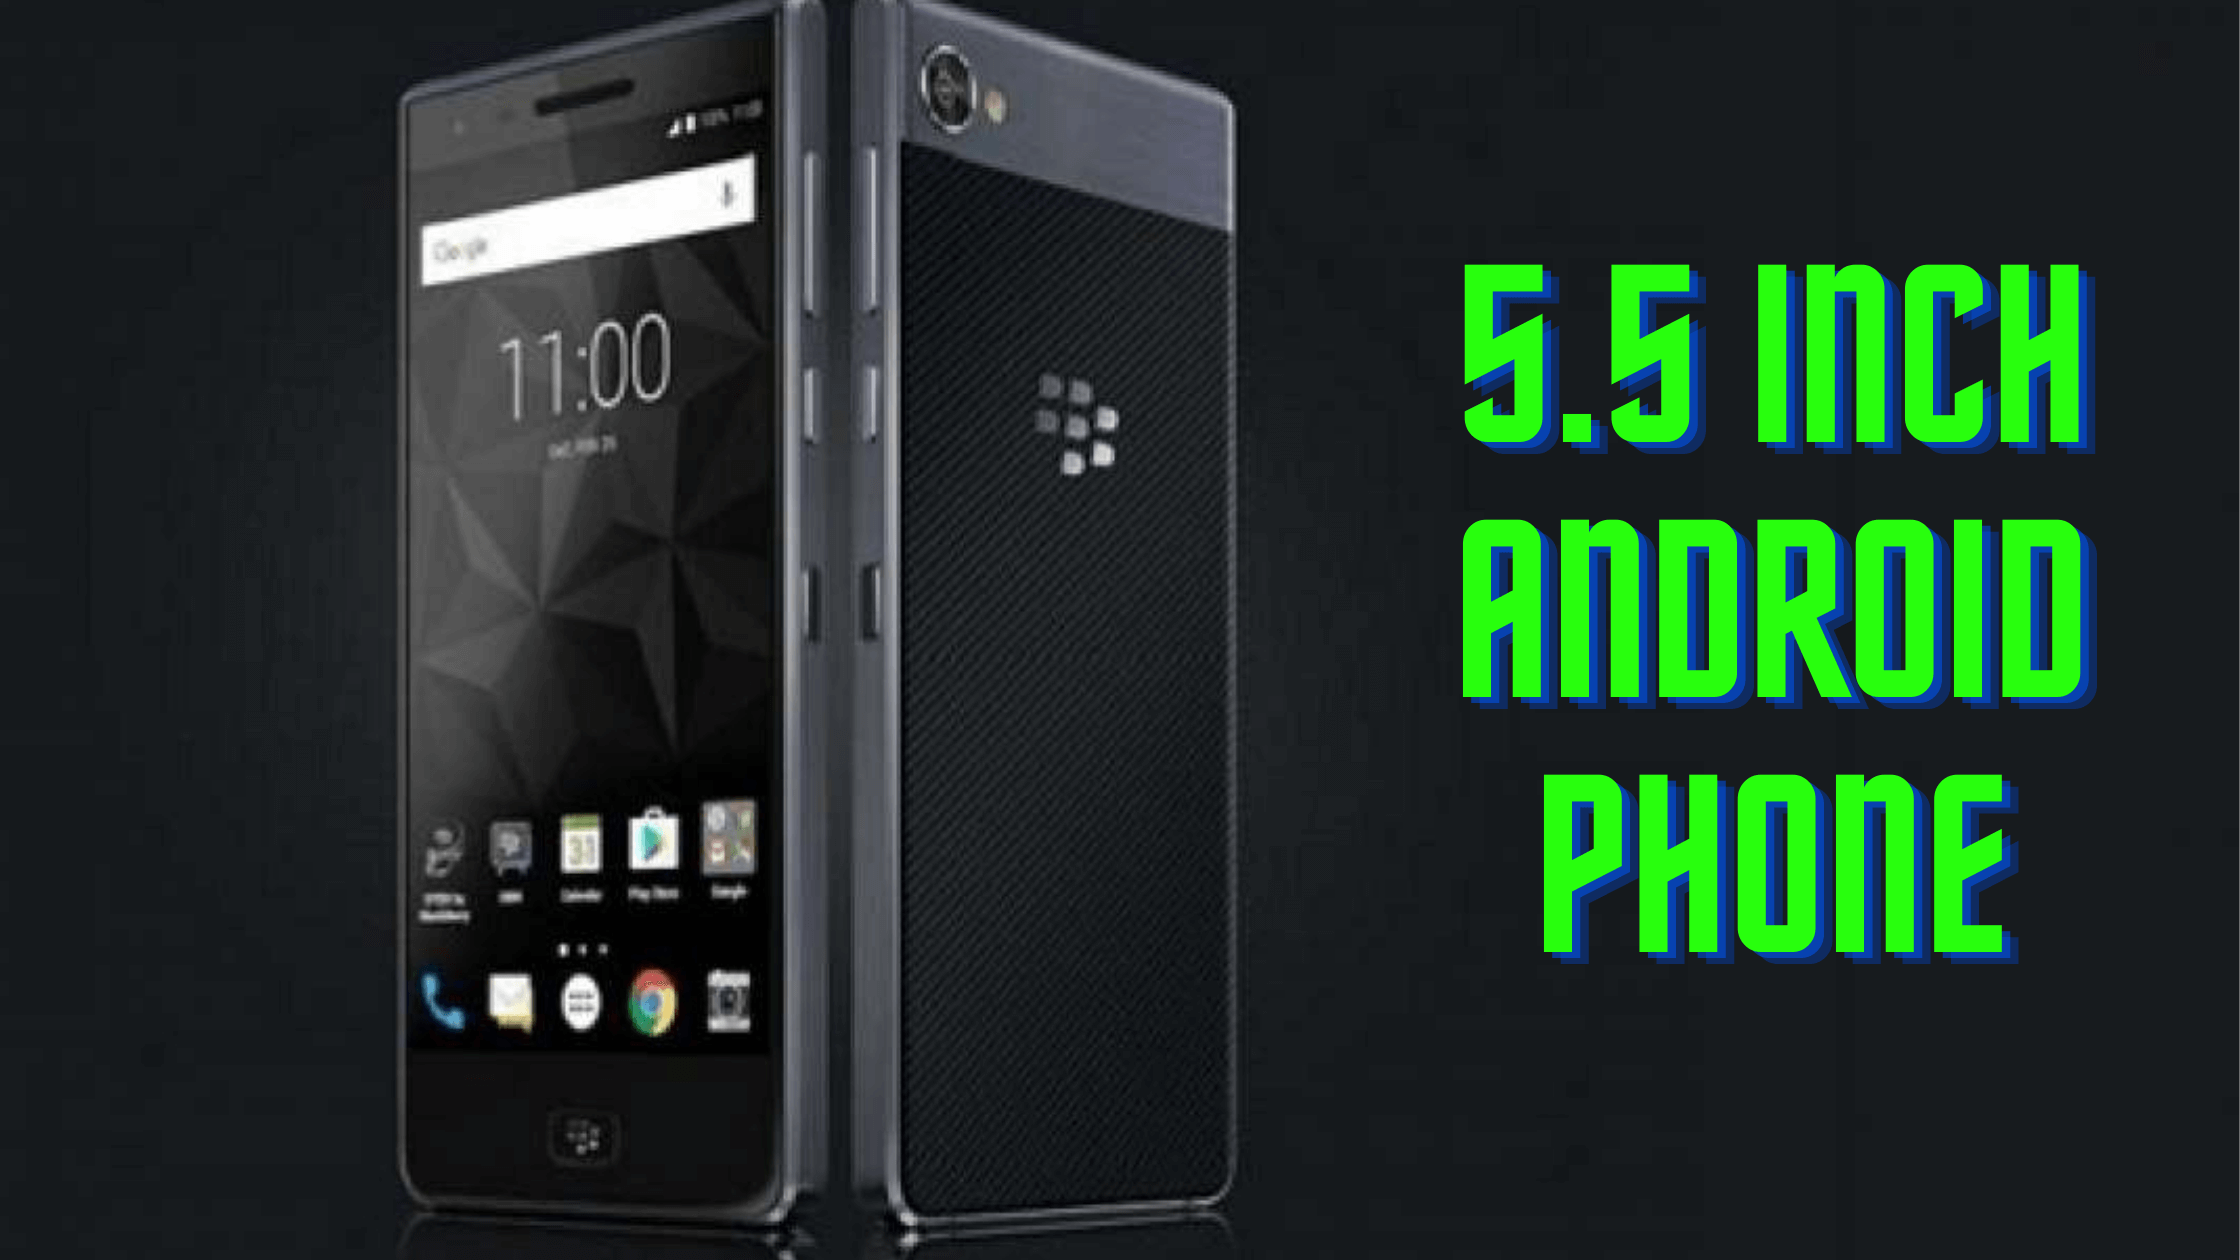 5.5 Inch Android Phone